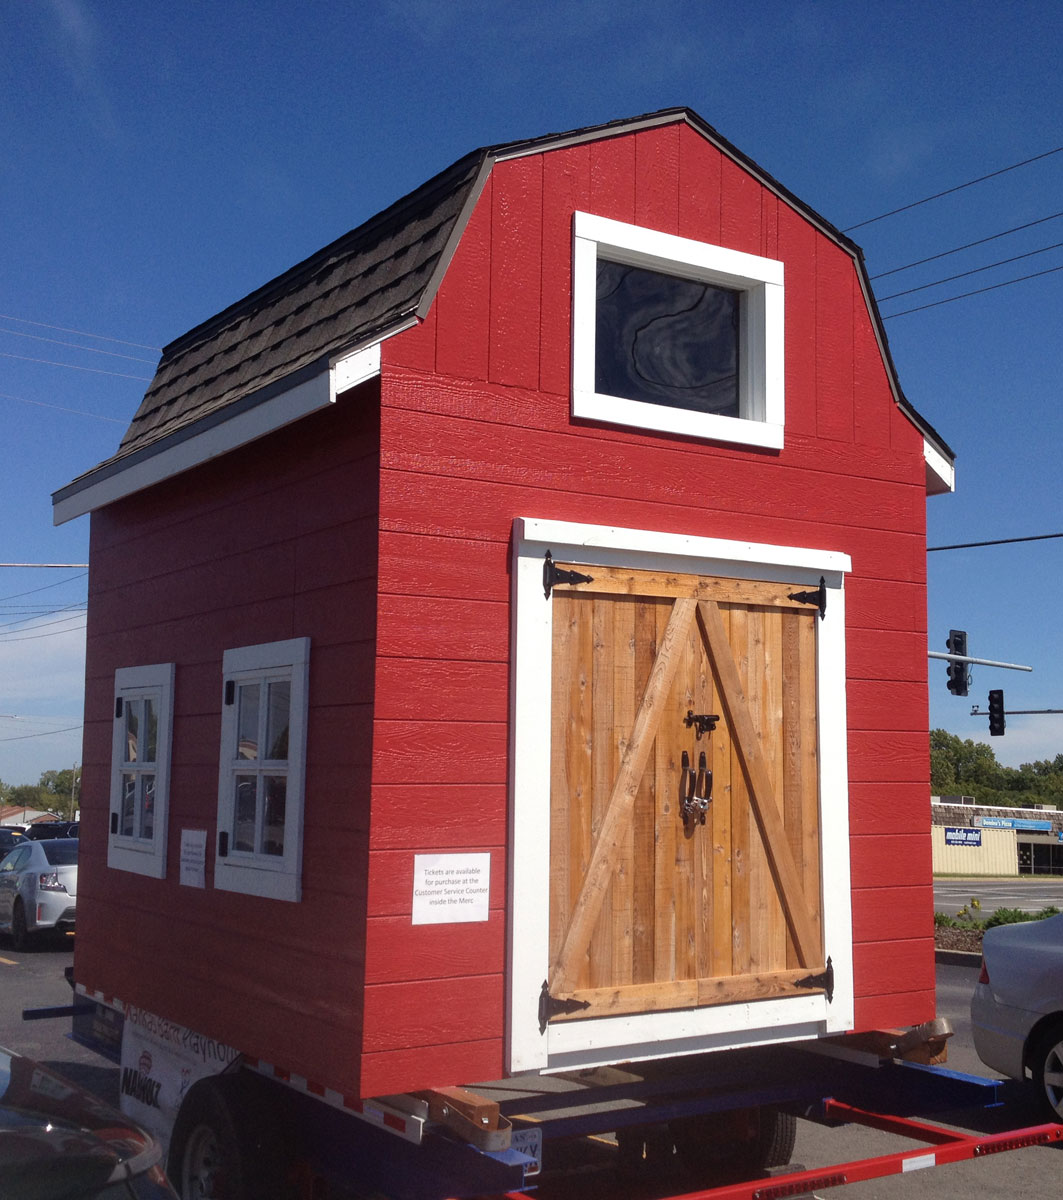 Front and left side of Douglas County CASA's playhouse barn, as seen in the parking lot of The Merc, 9th and Iowa Streets, in Lawrence. (Photo by J. Schafer)